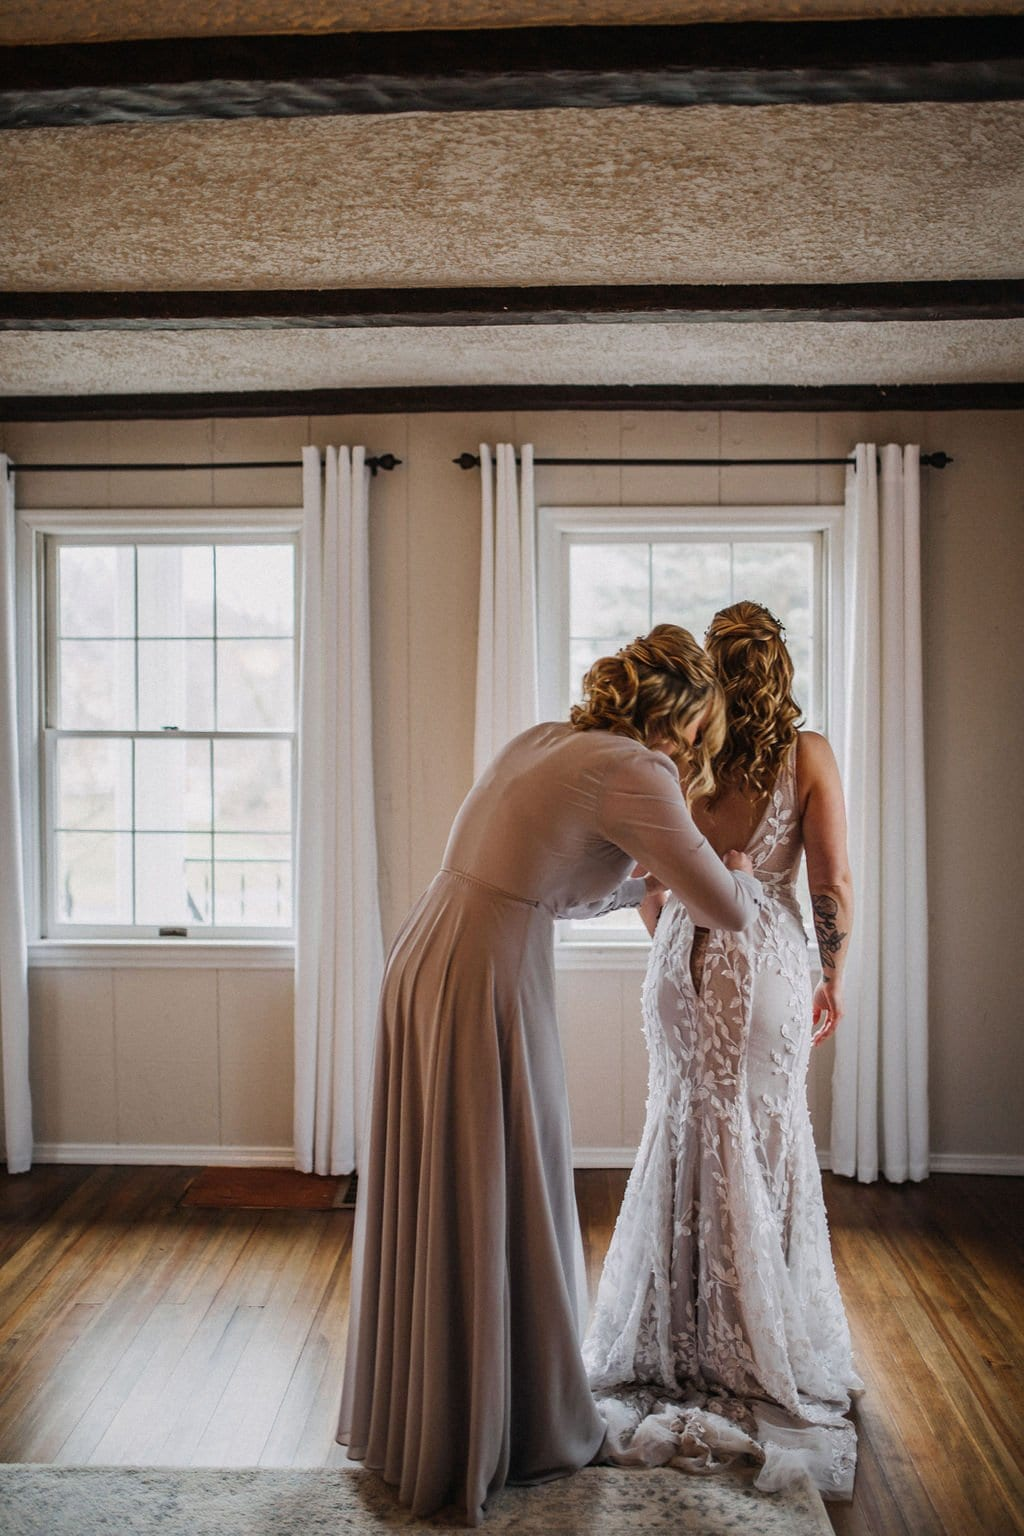 matron of honor helping bride